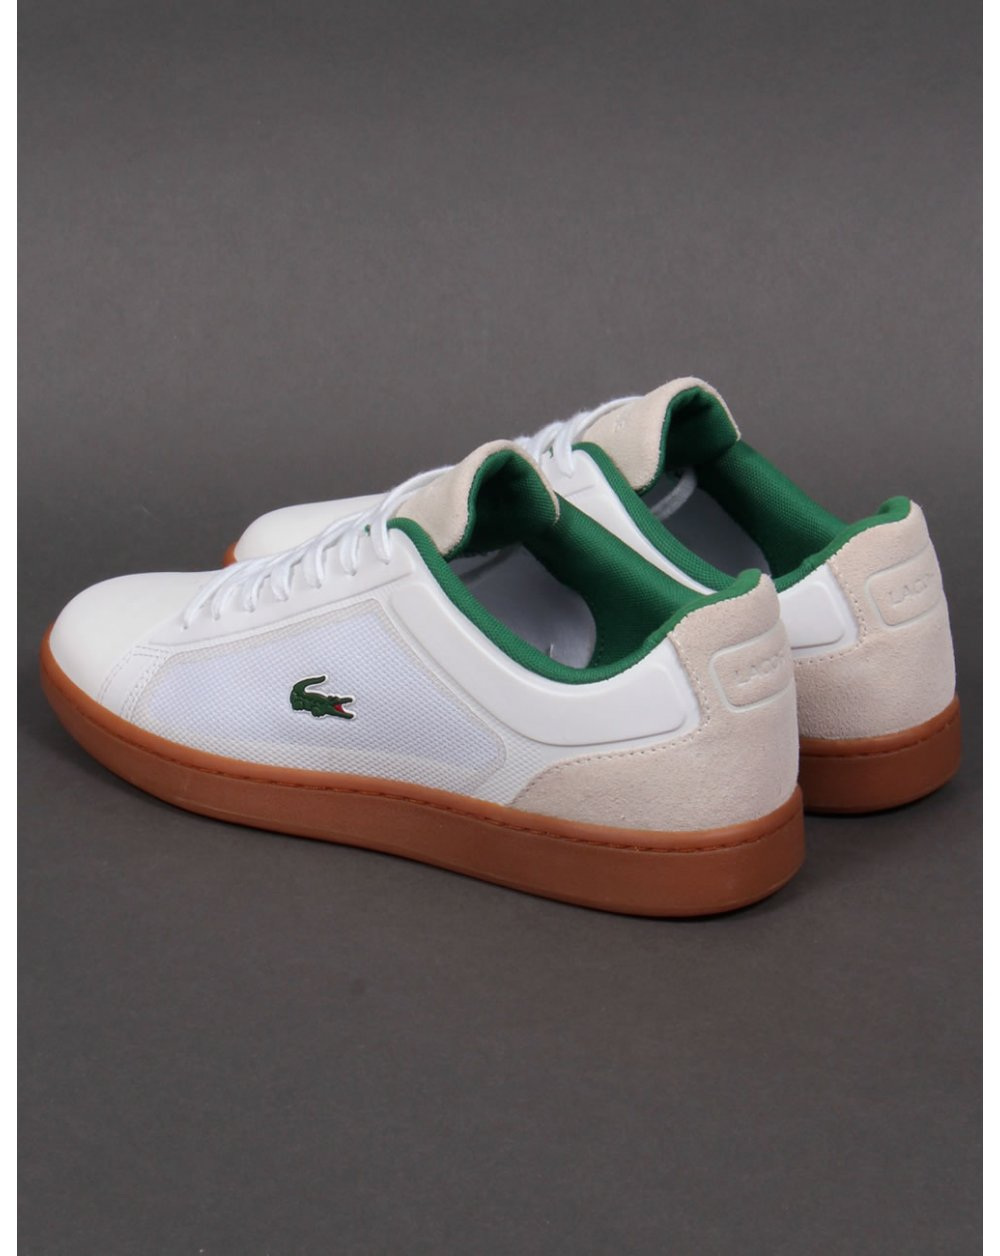 Lacoste White Shoes Fashion